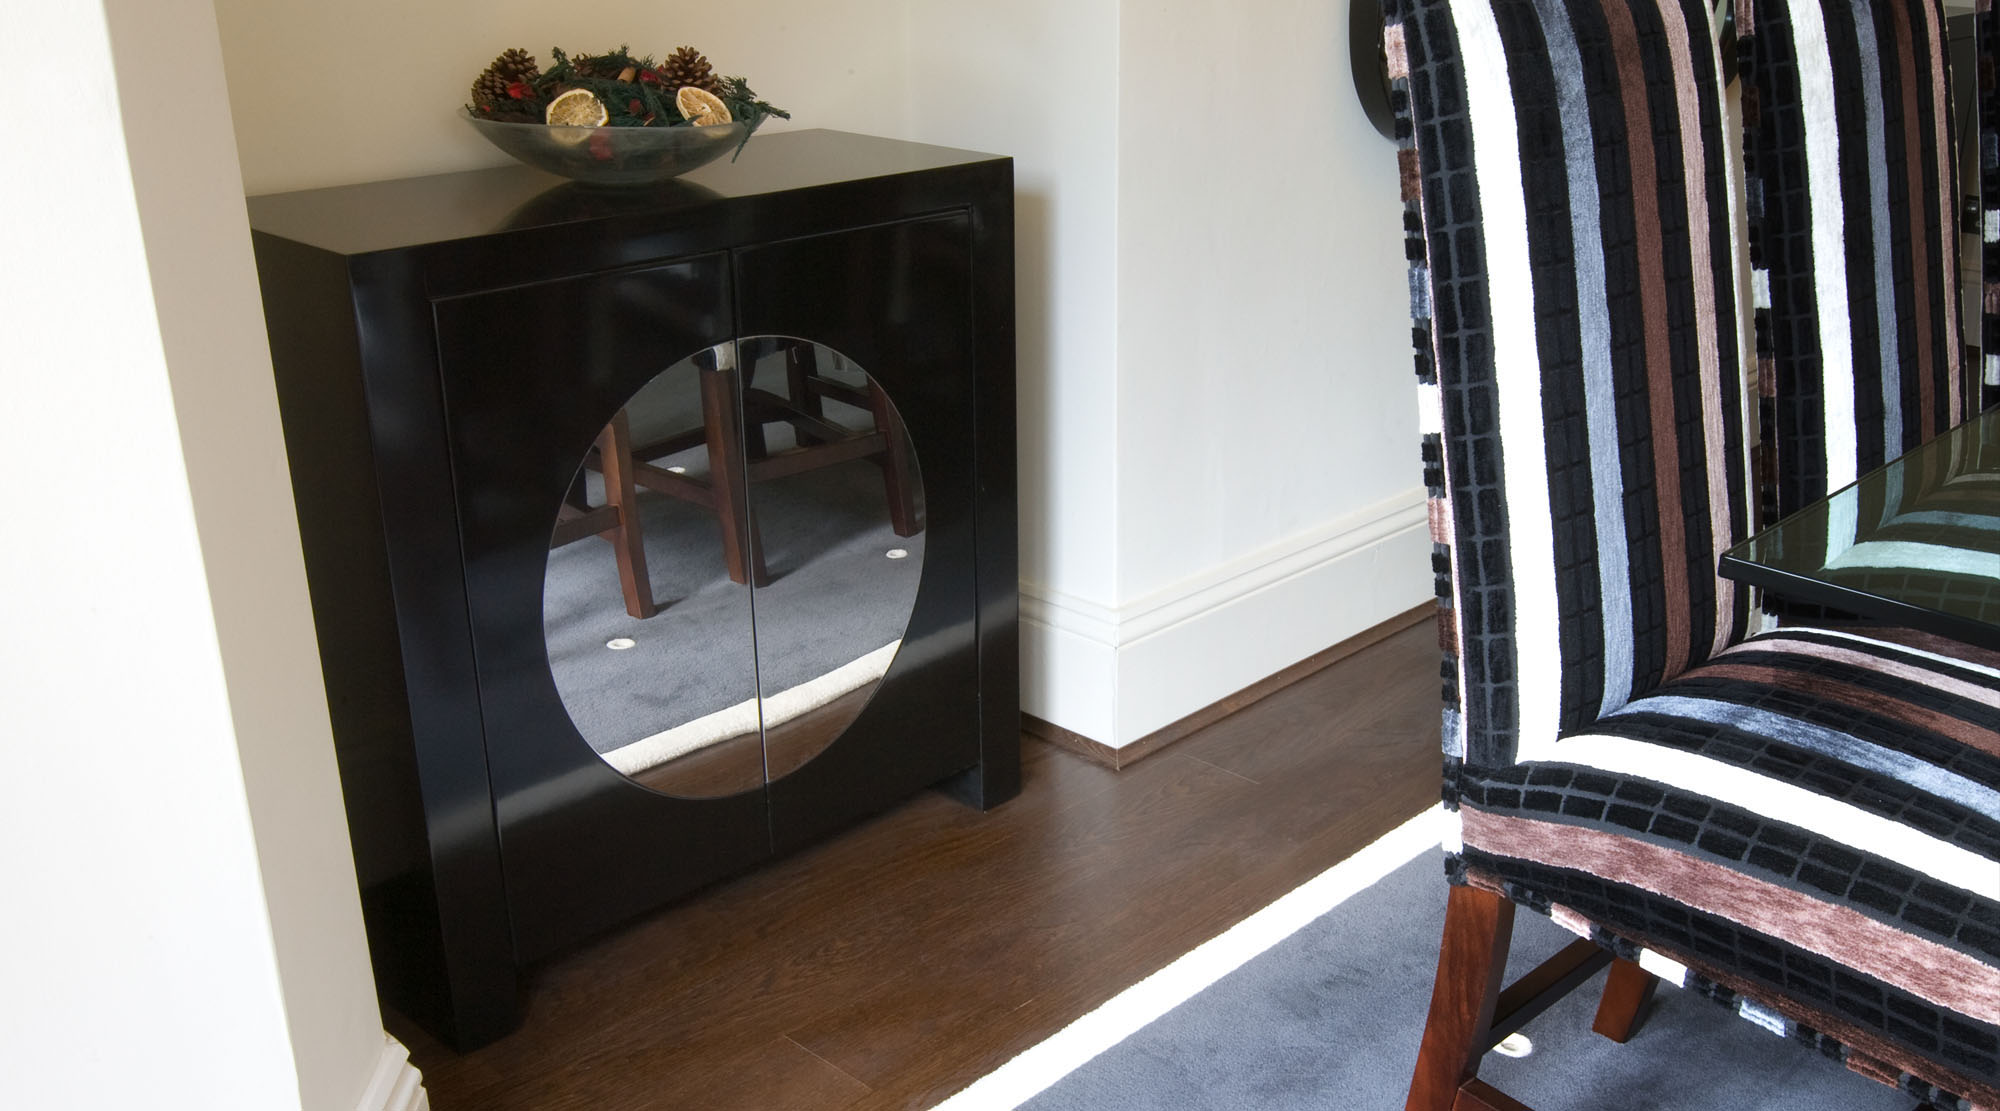 Dining room chair and black mirrored cupboard